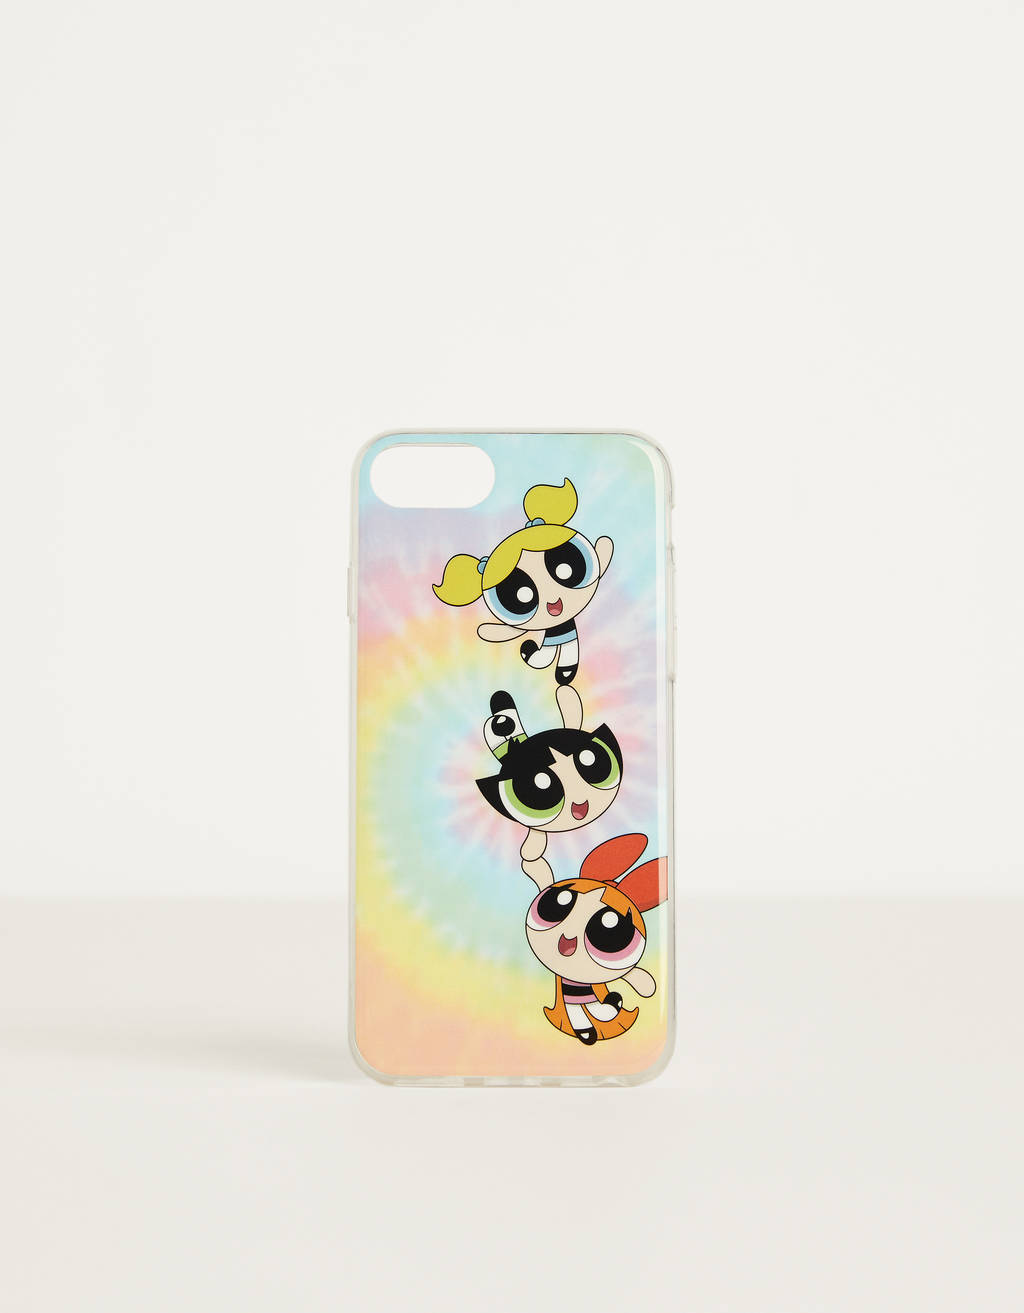 iPhone 6 / 6S / 7 / 8 vāciņš 'The Powerpuff Girls x Bershka'